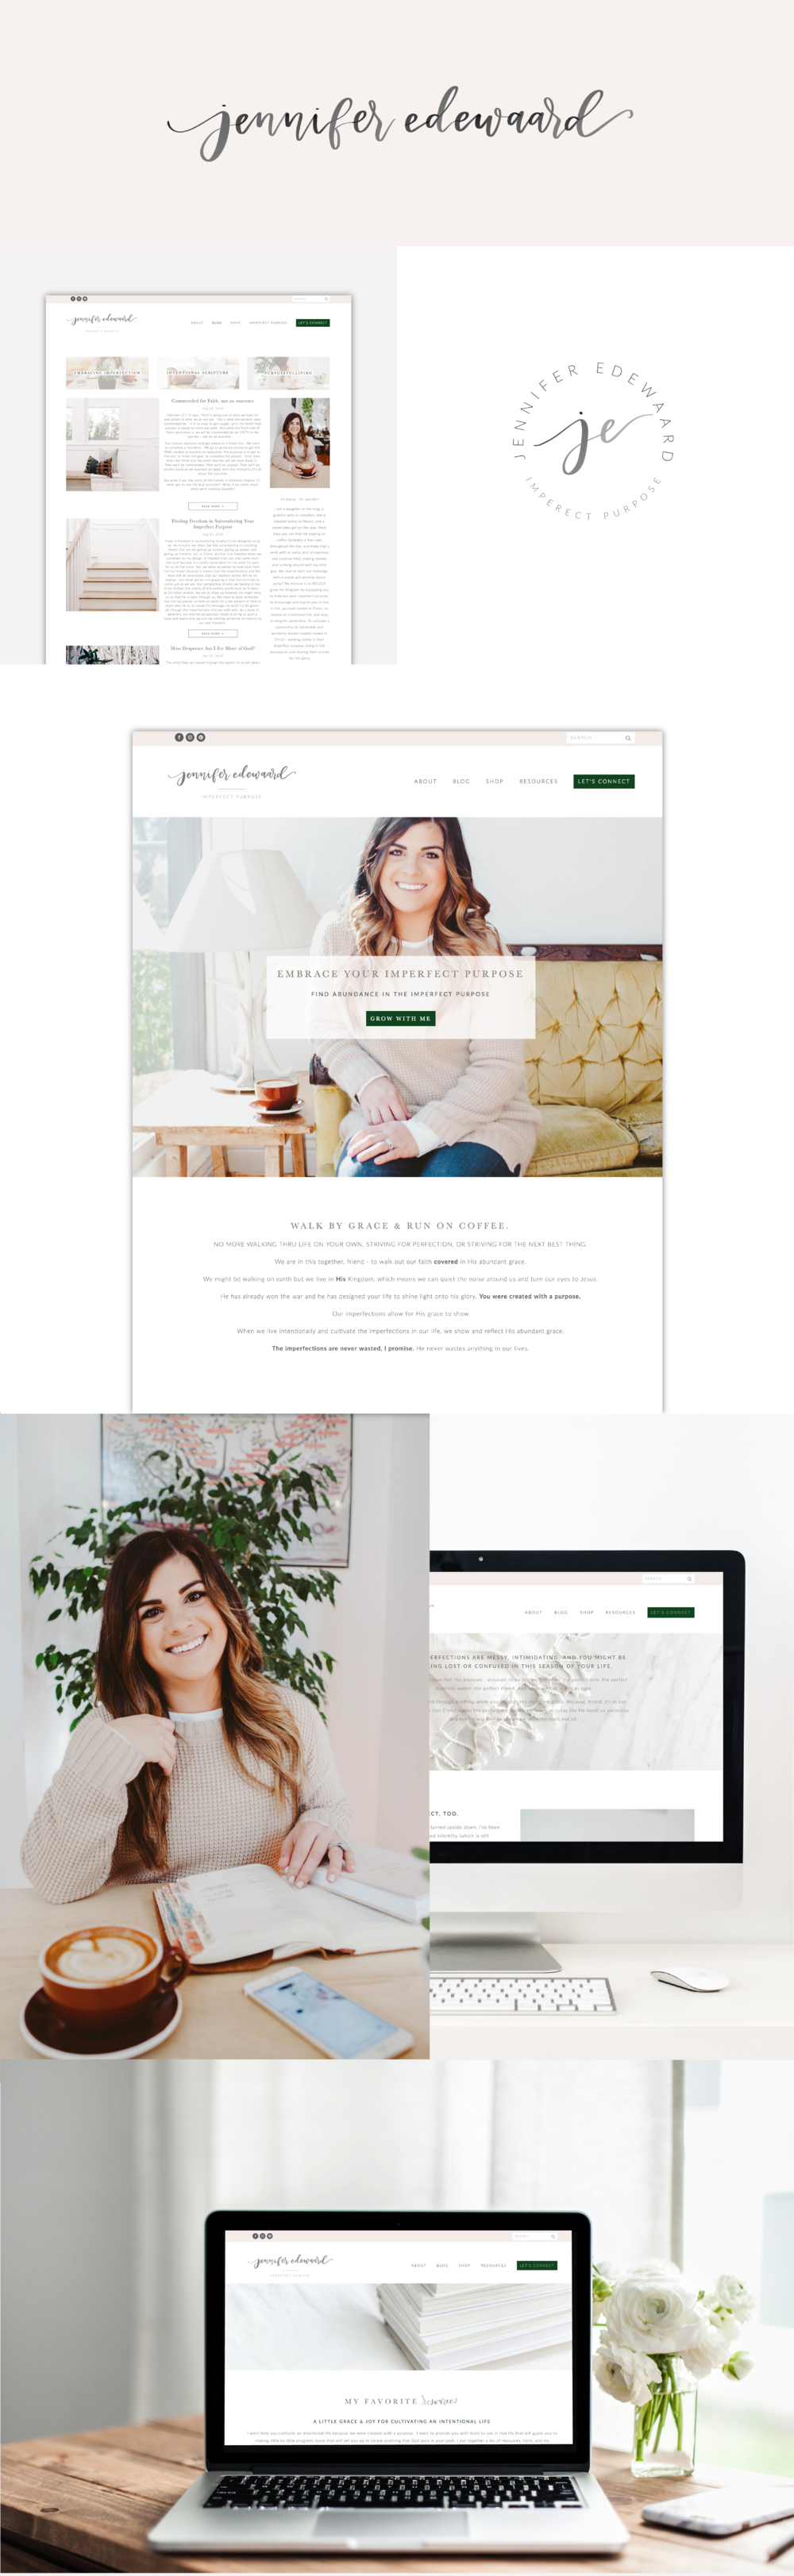 Jennifer Edewaard Website Design